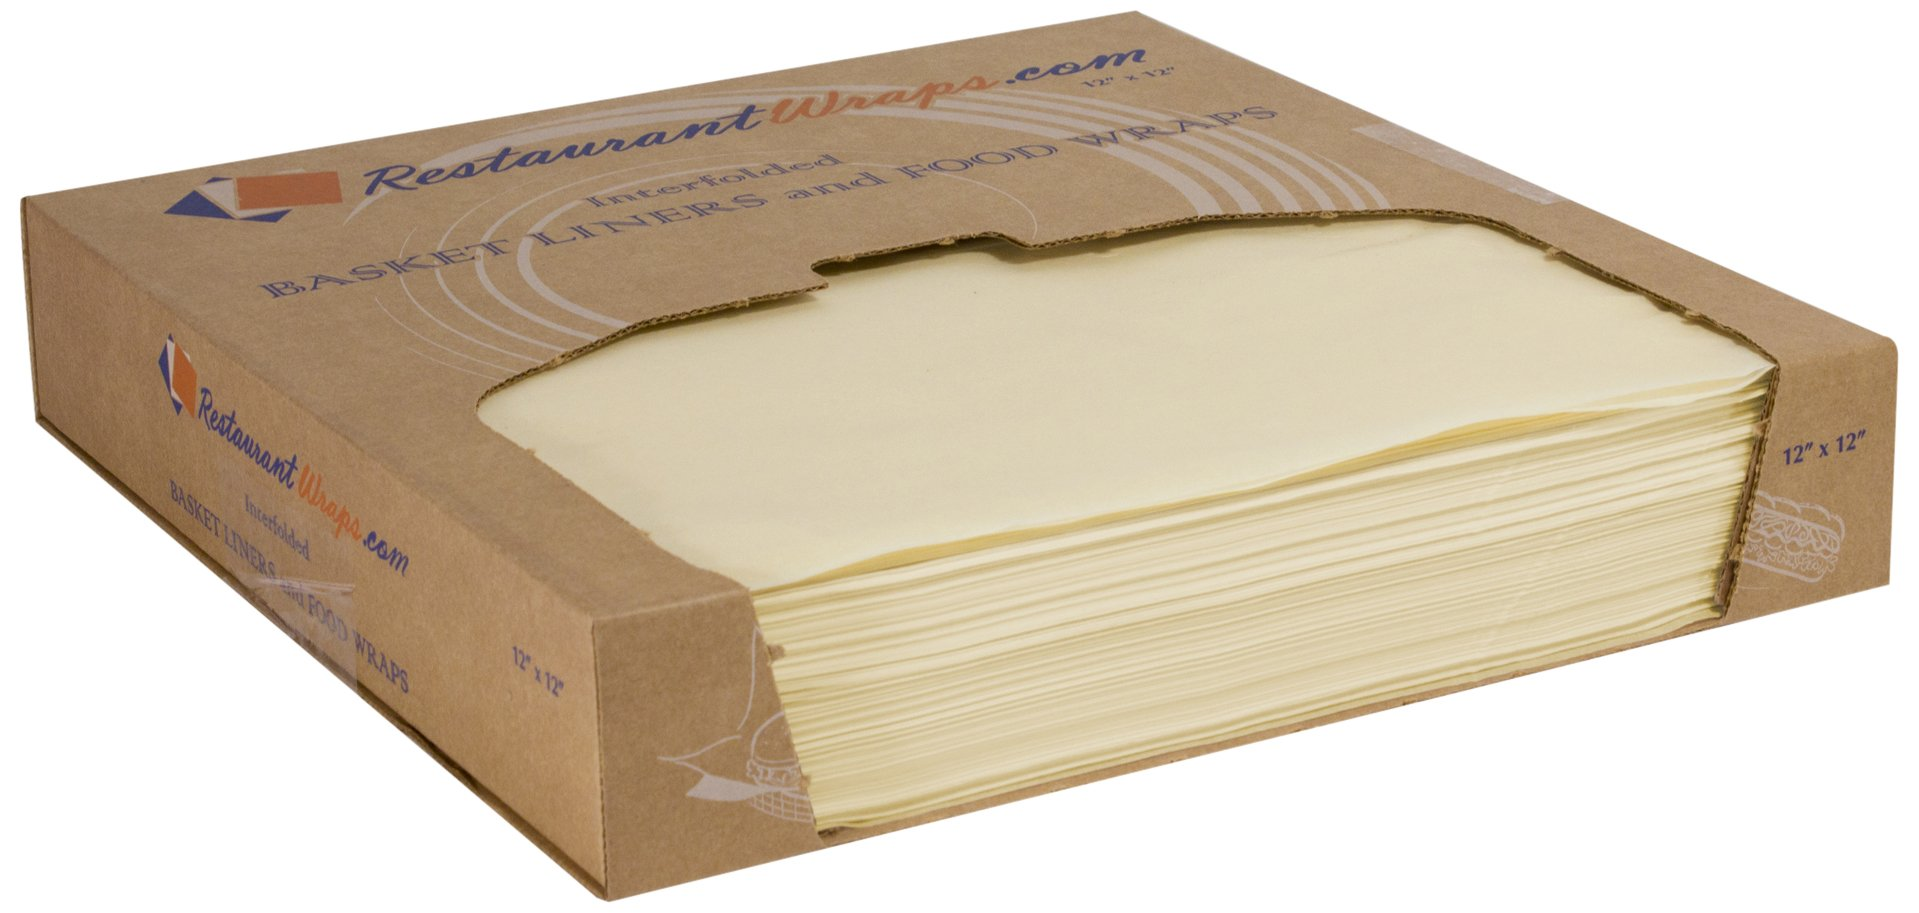 RestaurantWraps.com Waxed Sheets, Basket Liner and Food Wrap, 12'' x 12'', Cream (6 Packs of 1000 Sheets)